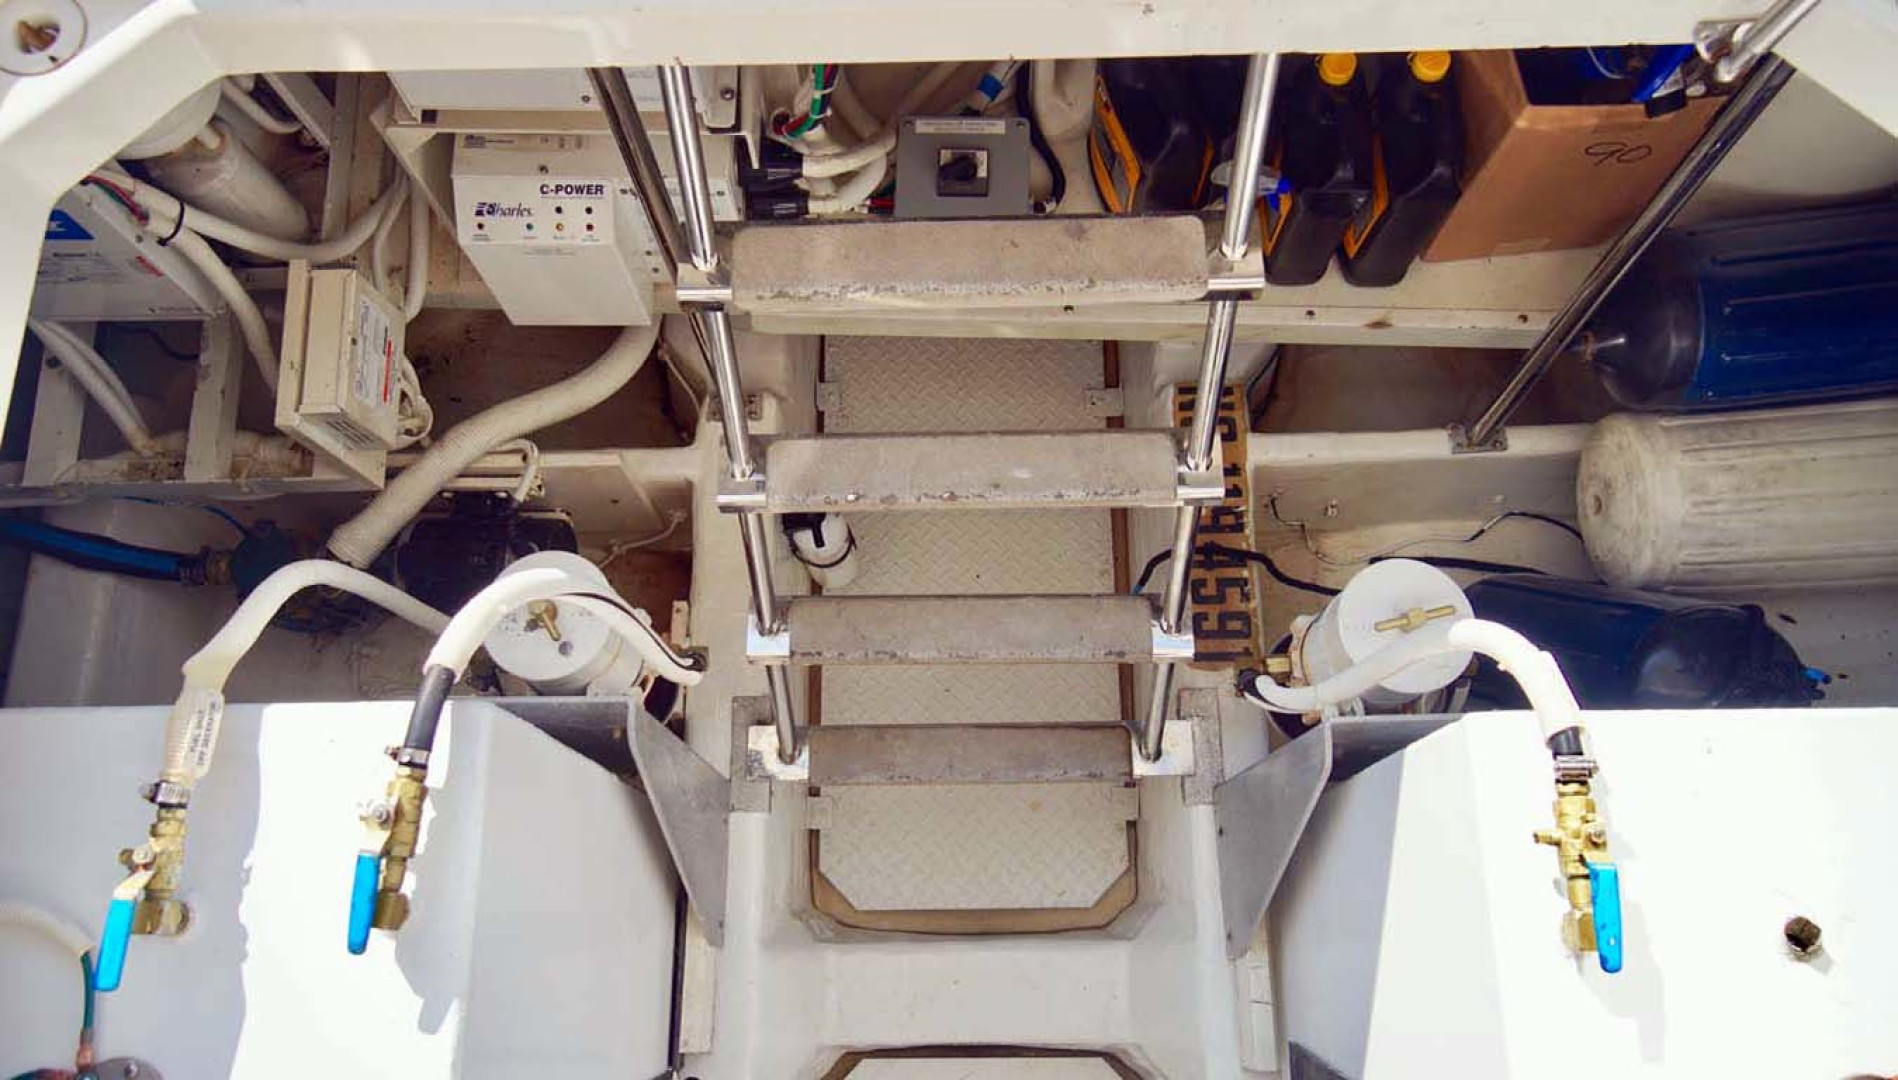 Carver-560 Voyager 2006-NEED A BREAK Fort Myers-Florida-United States-Engine Room Access-1105803 | Thumbnail